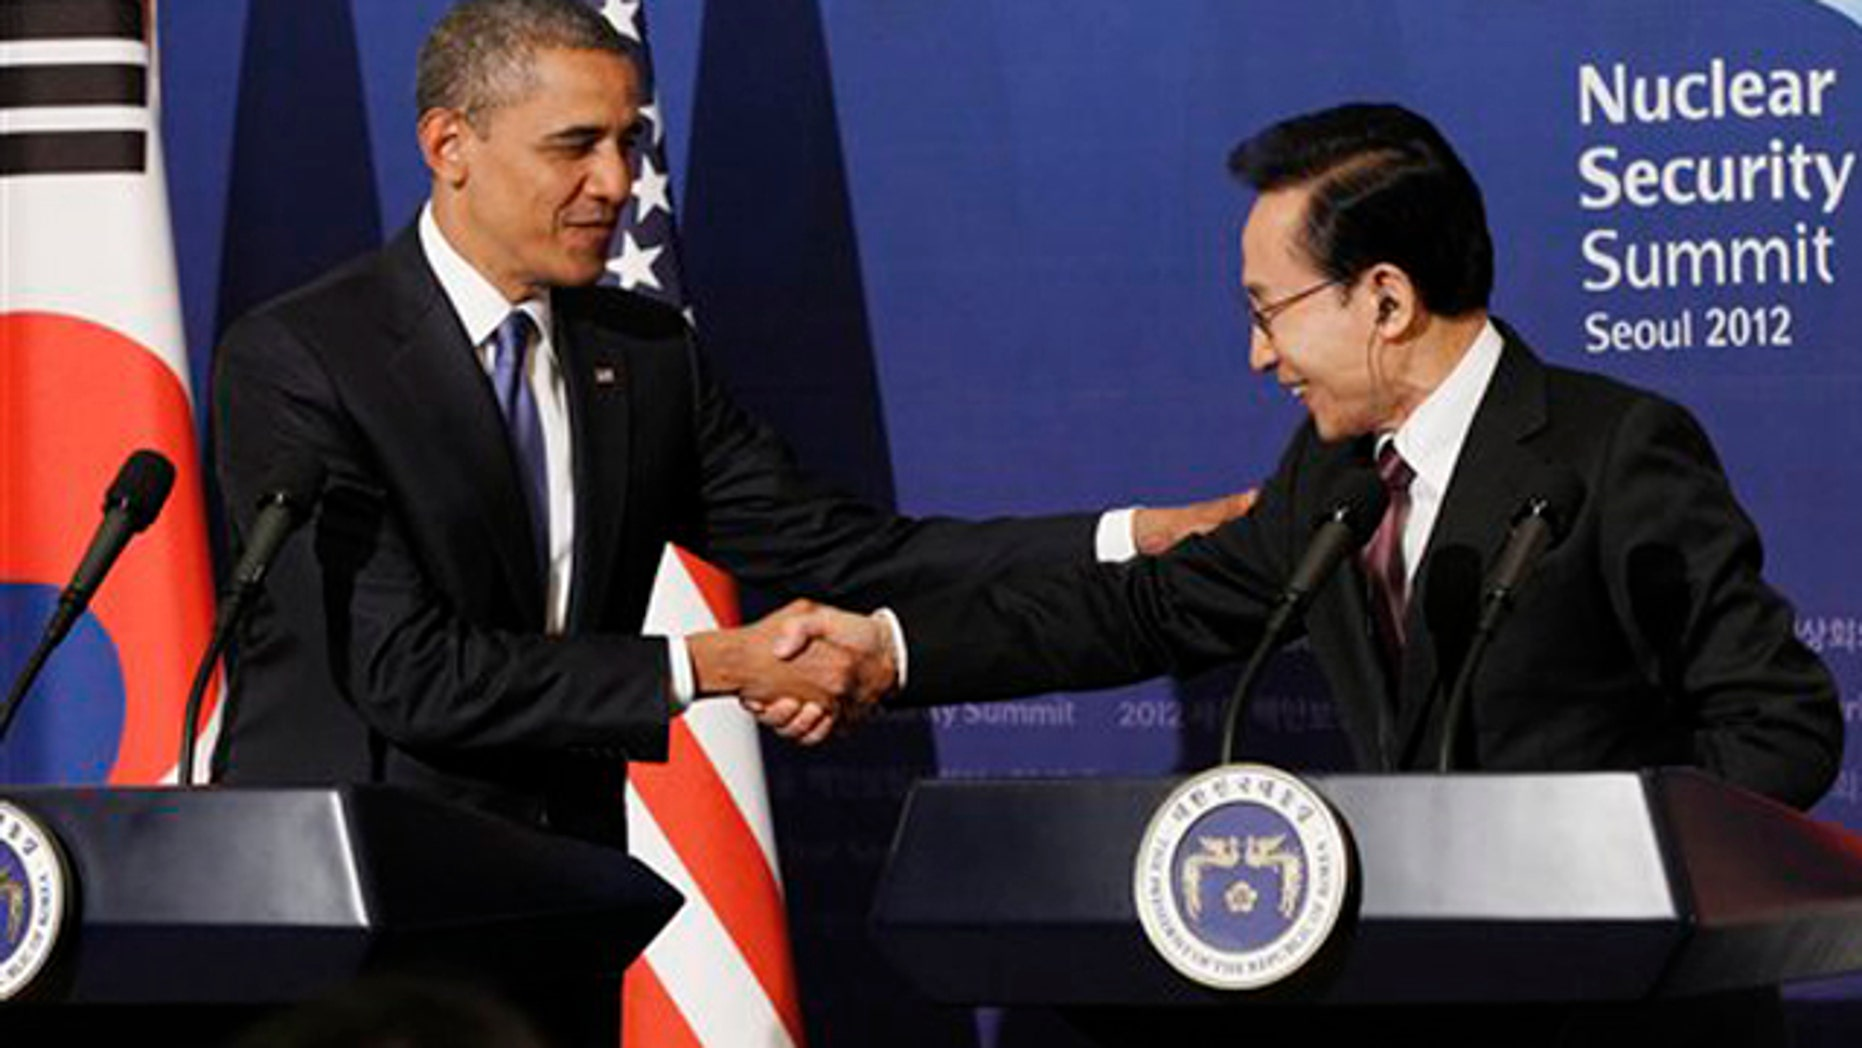 Mar. 25, 2012: U.S. President Barack Obama shakes hands with South Korean President Lee Myung-bak during their joint news conference at the presidential Blue House in Seoul.